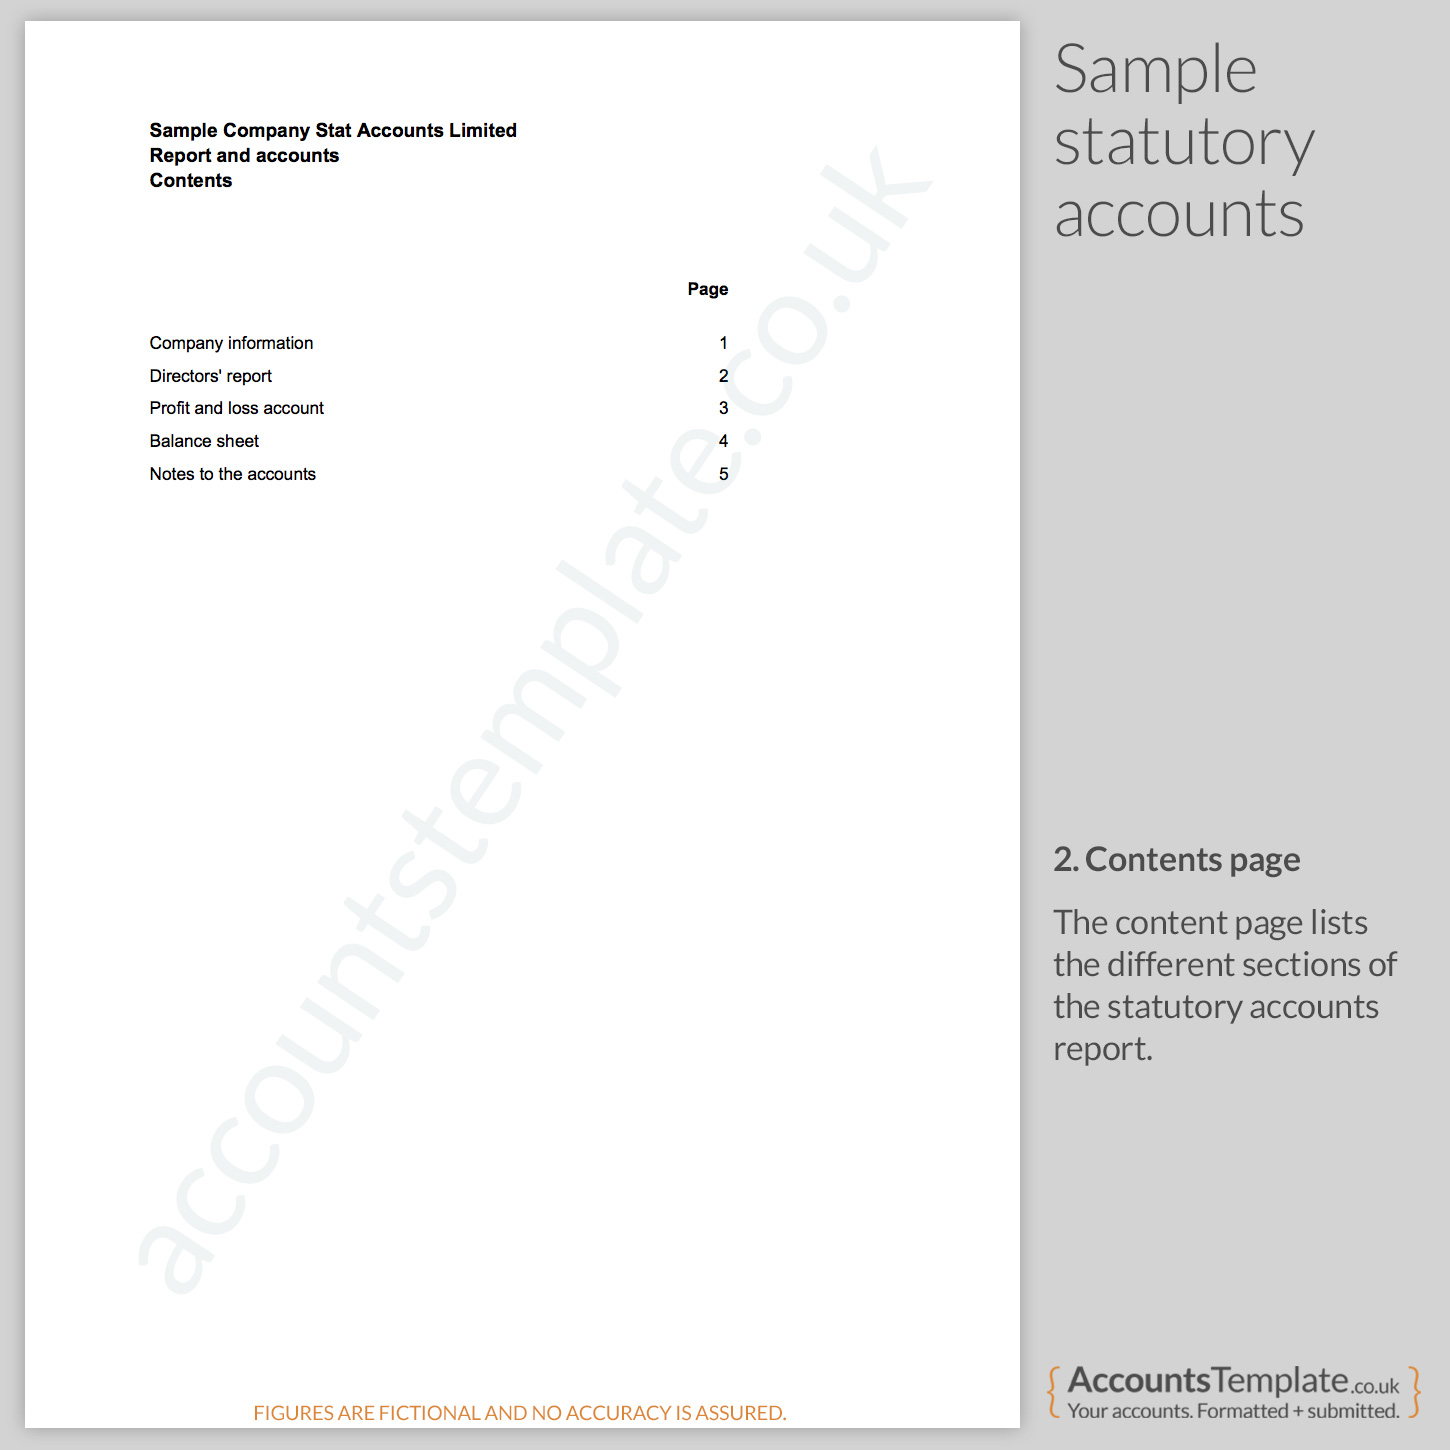 Sample Page: A Guide To The Statutory Accounts Format